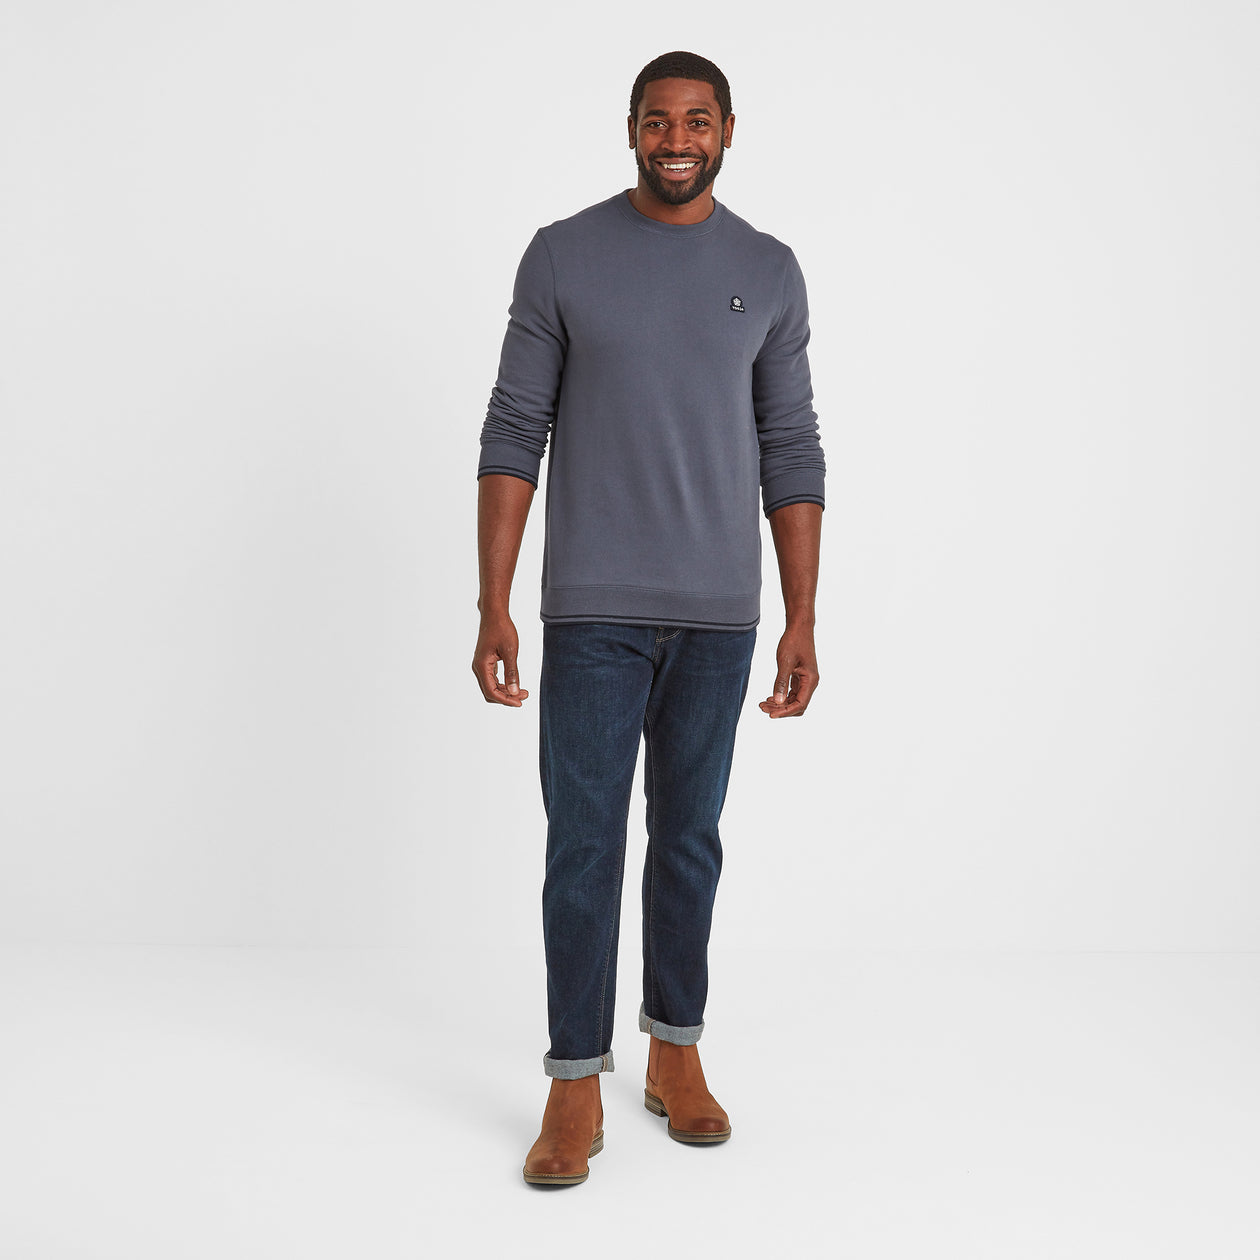 Lowe Mens Crew Neck Jumper - Washed Blue image 4